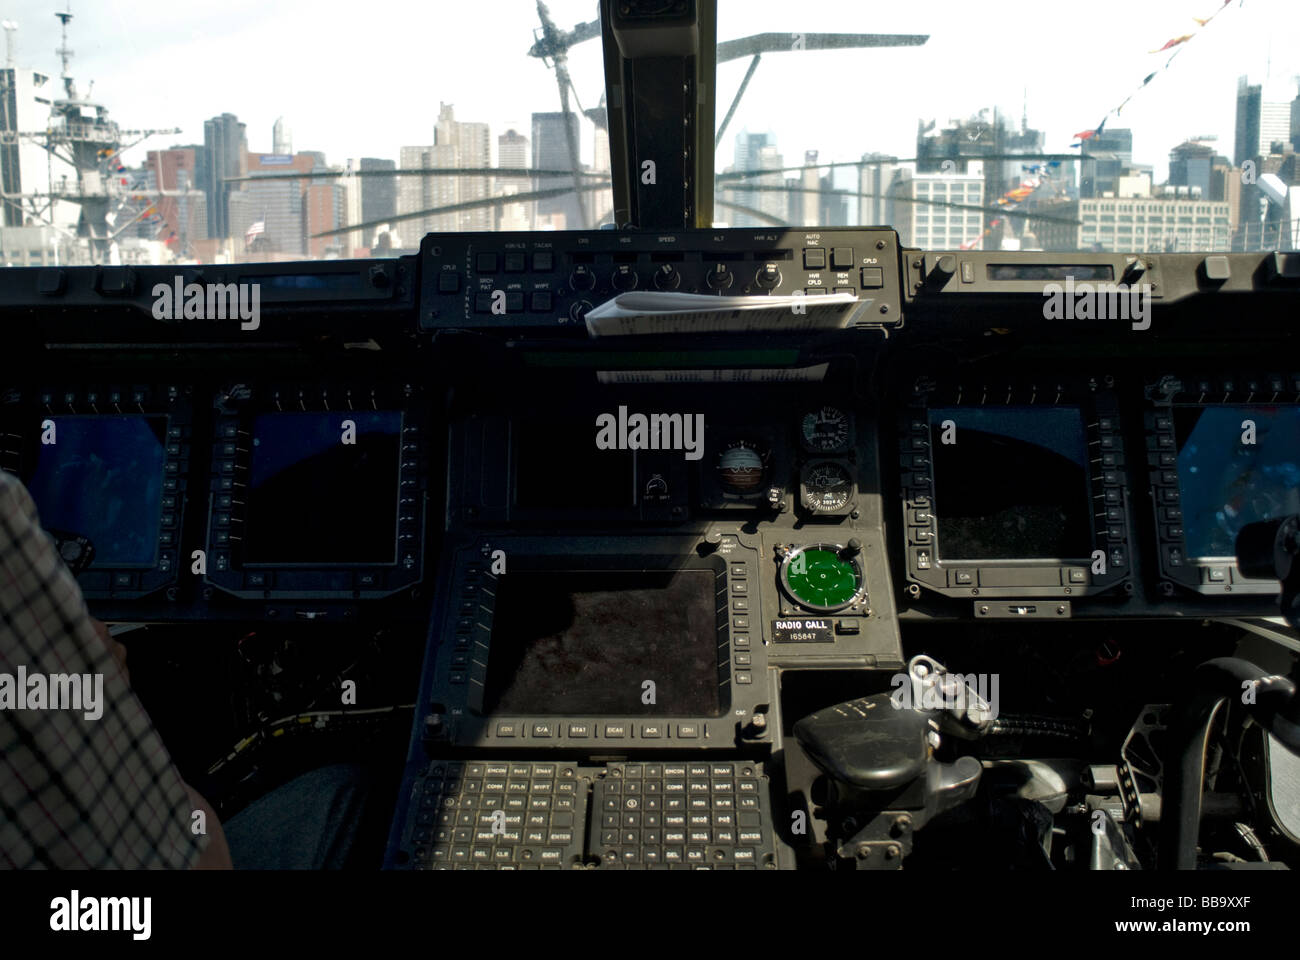 Multi-function displays inside U.S. Marines Bell-Boeing Osprey V-22 aircraft aboard the USS Iwo Jima docked in New - Stock Image